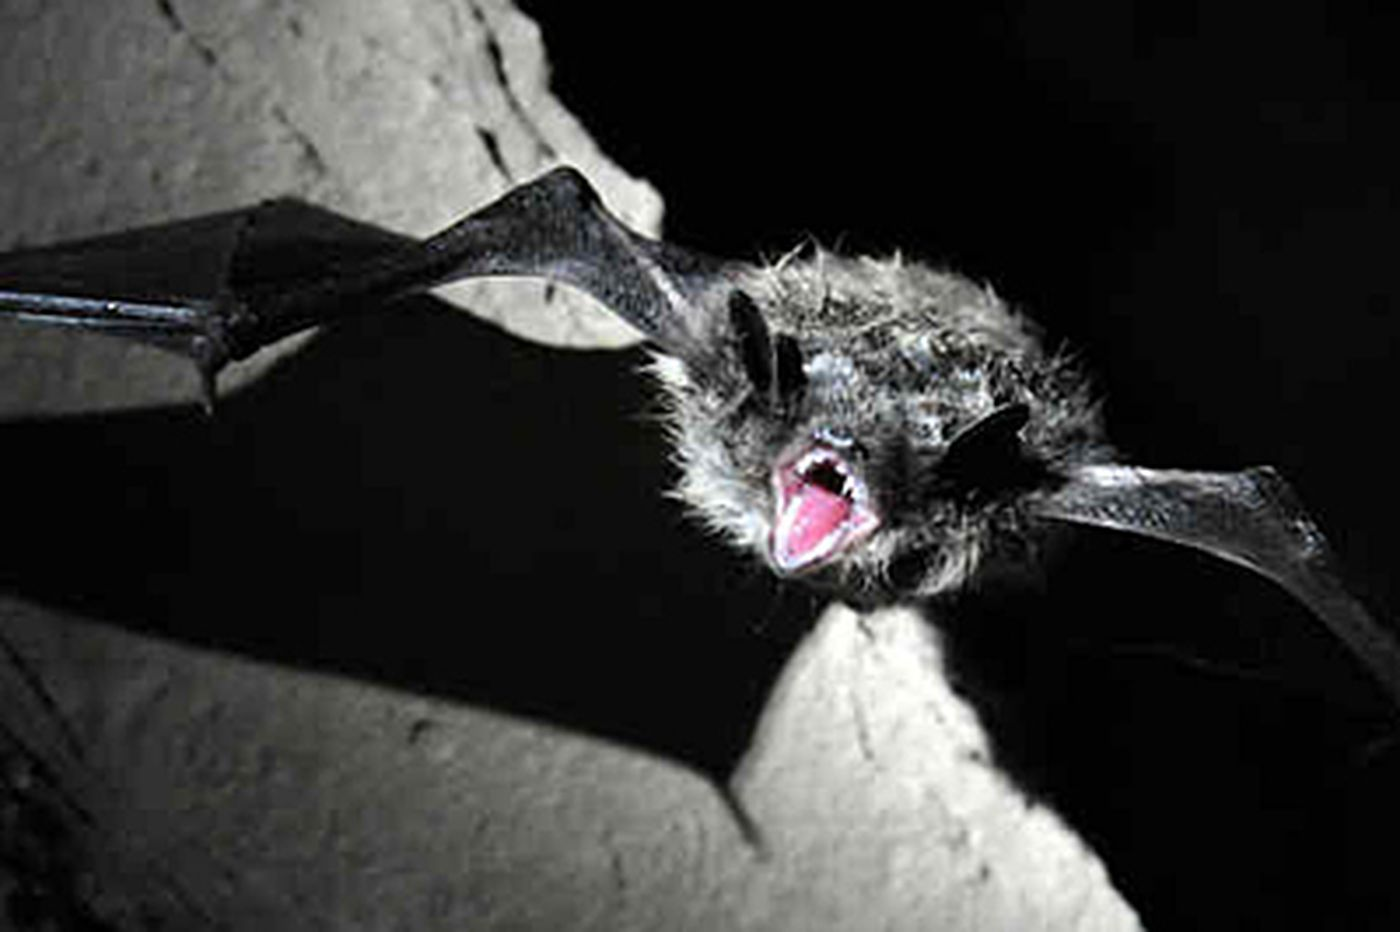 Solving the mystery of the dying bats